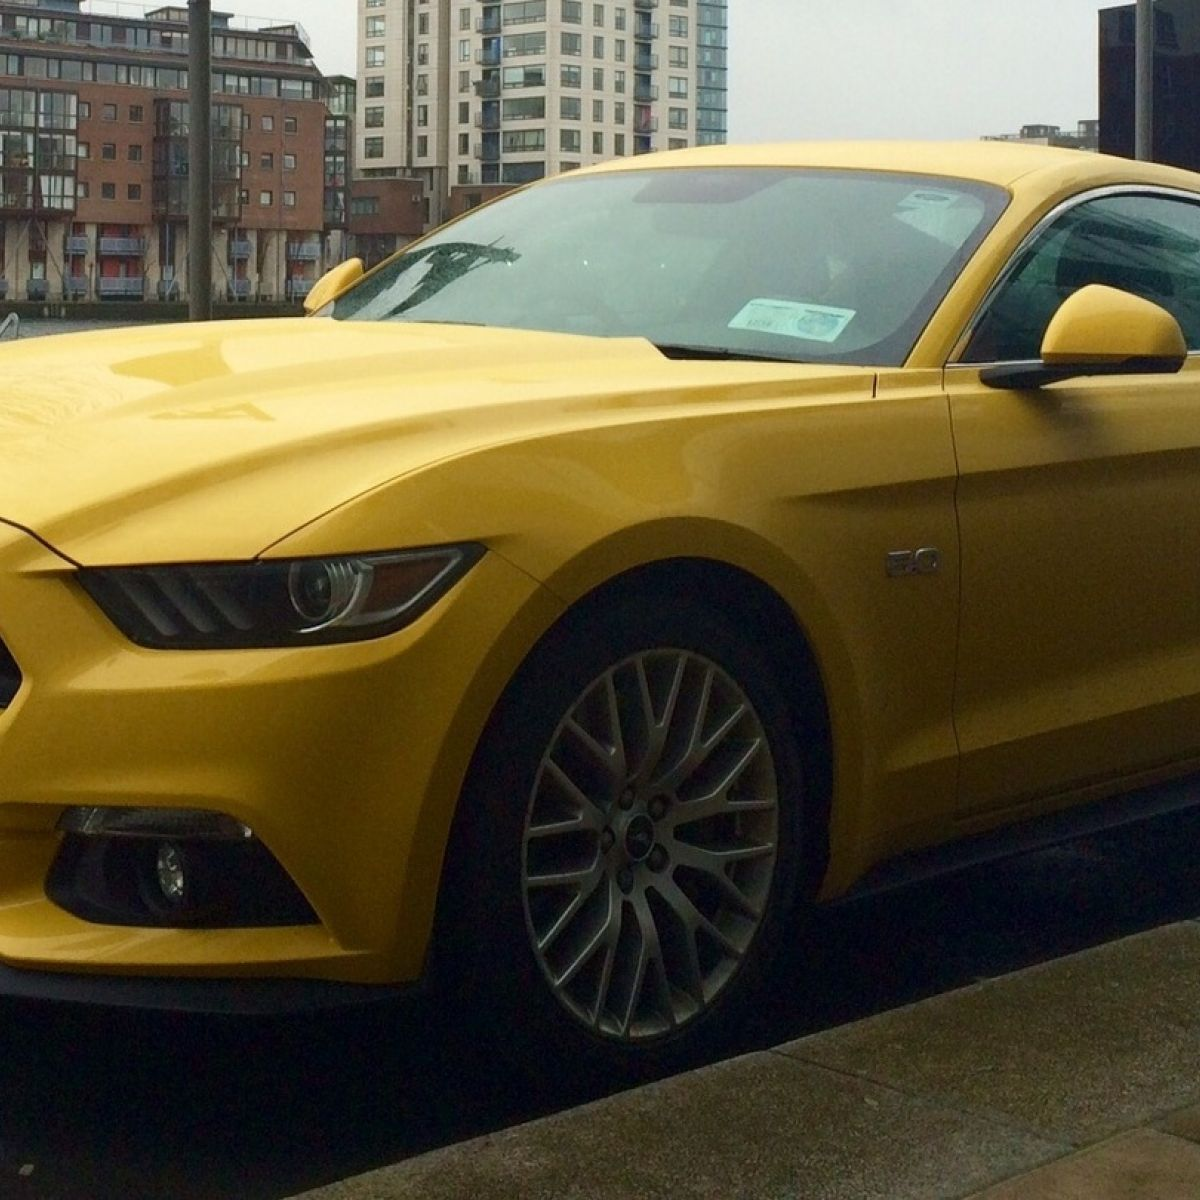 Ford Mustang Gt Price Ireland